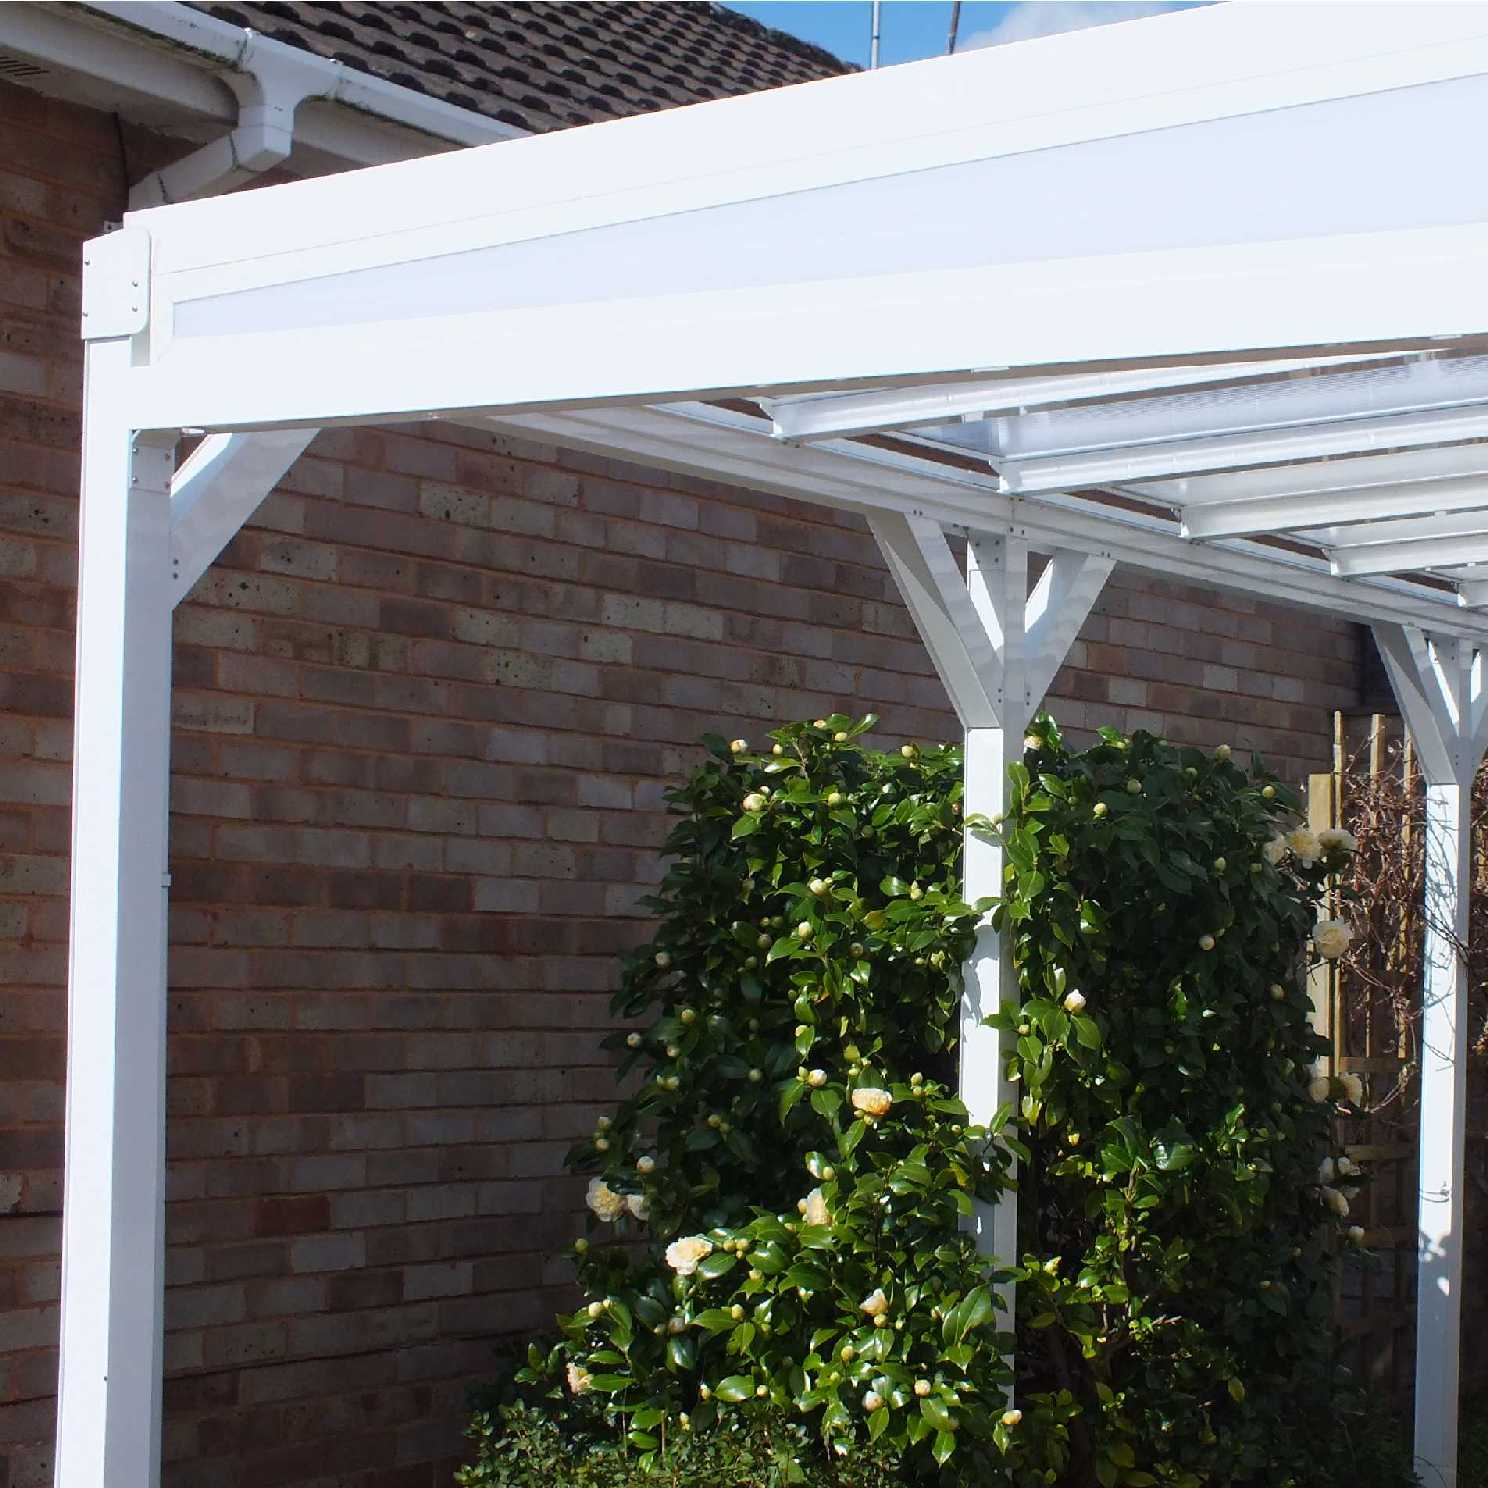 Omega Smart Lean-To Canopy with 16mm Polycarbonate Glazing - 11.2m (W) x 4.5m (P), (5) Supporting Posts from Omega Build